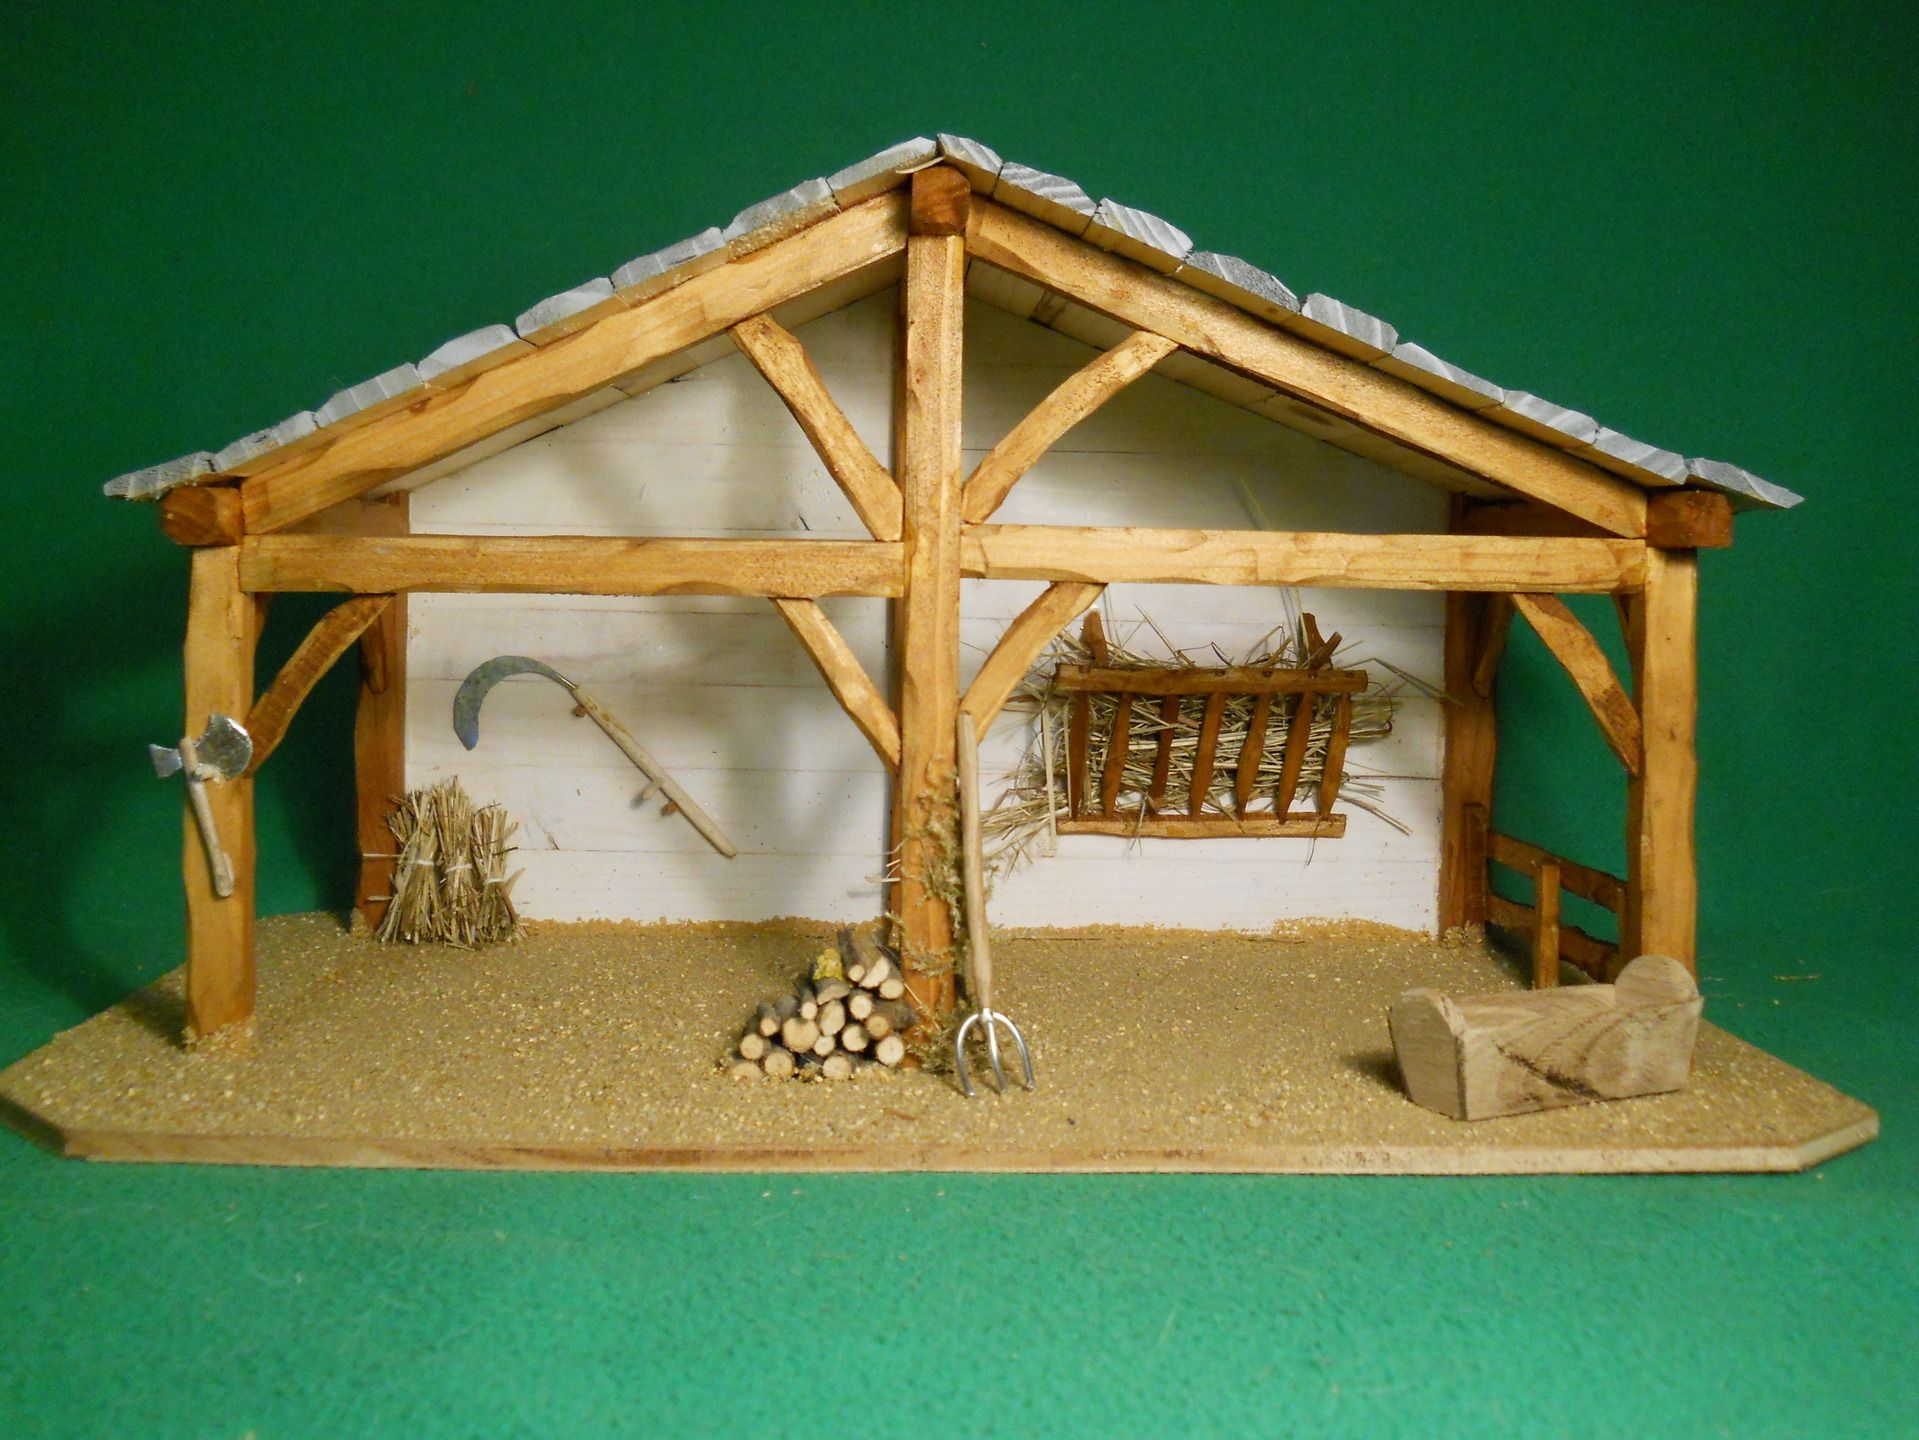 Cr che de no l petite cantalienne en ch ne fabrication - Idee decoration creche noel ...